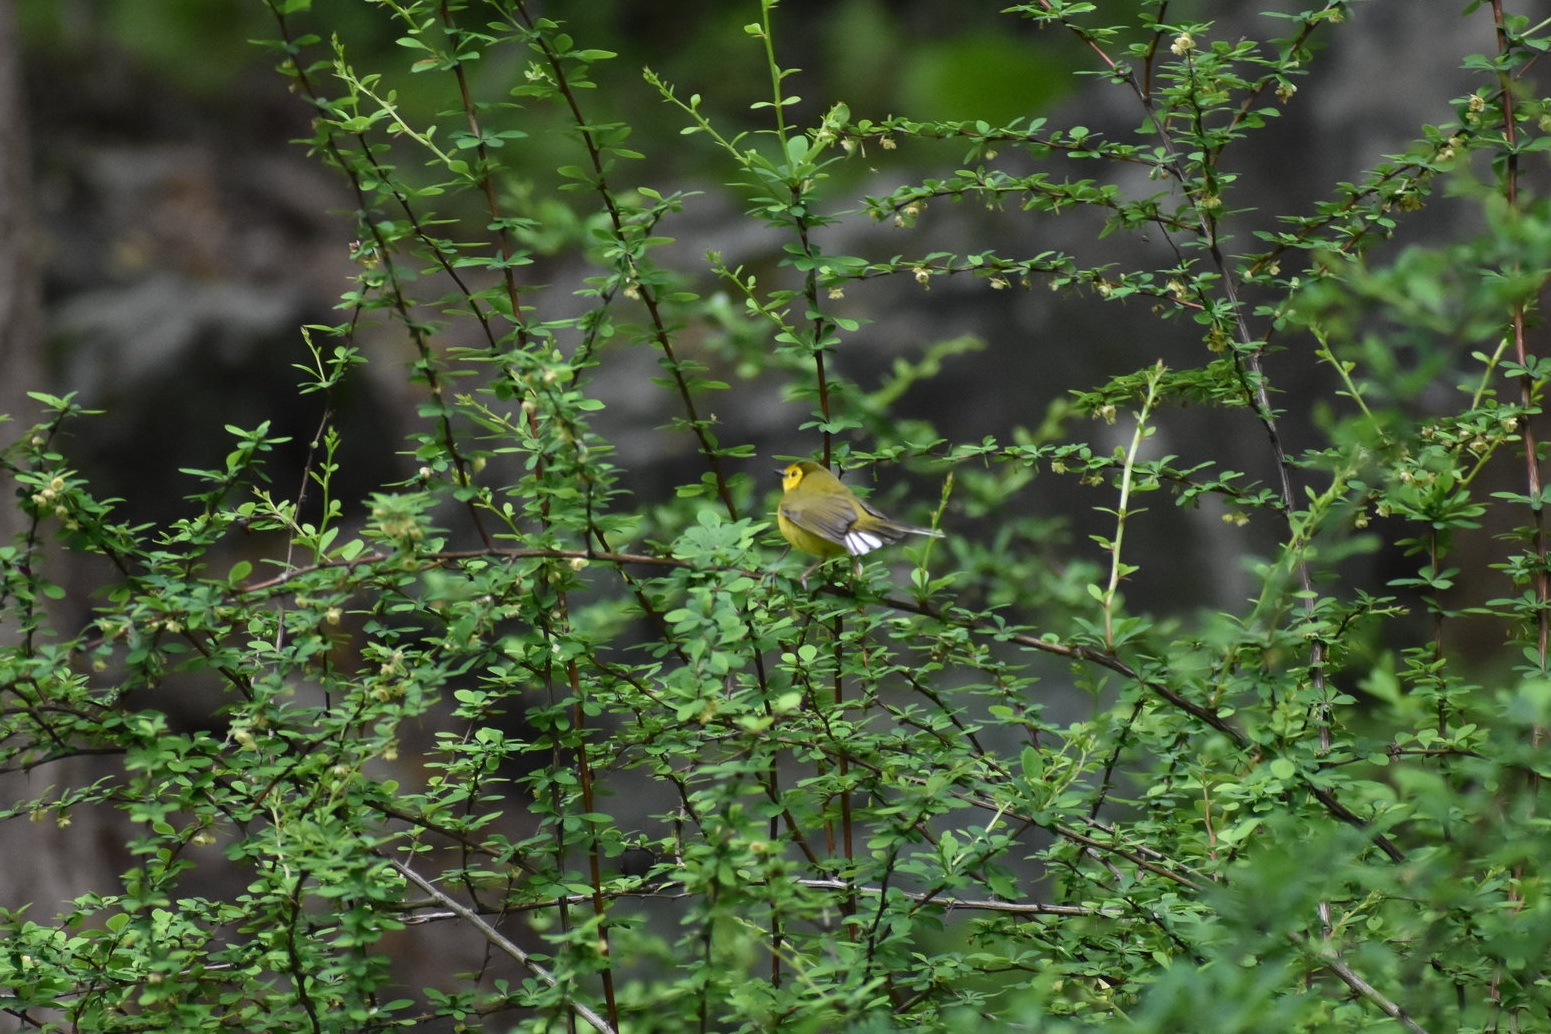 Hooded Warbler flashing white tail feathers on Barberry Plant